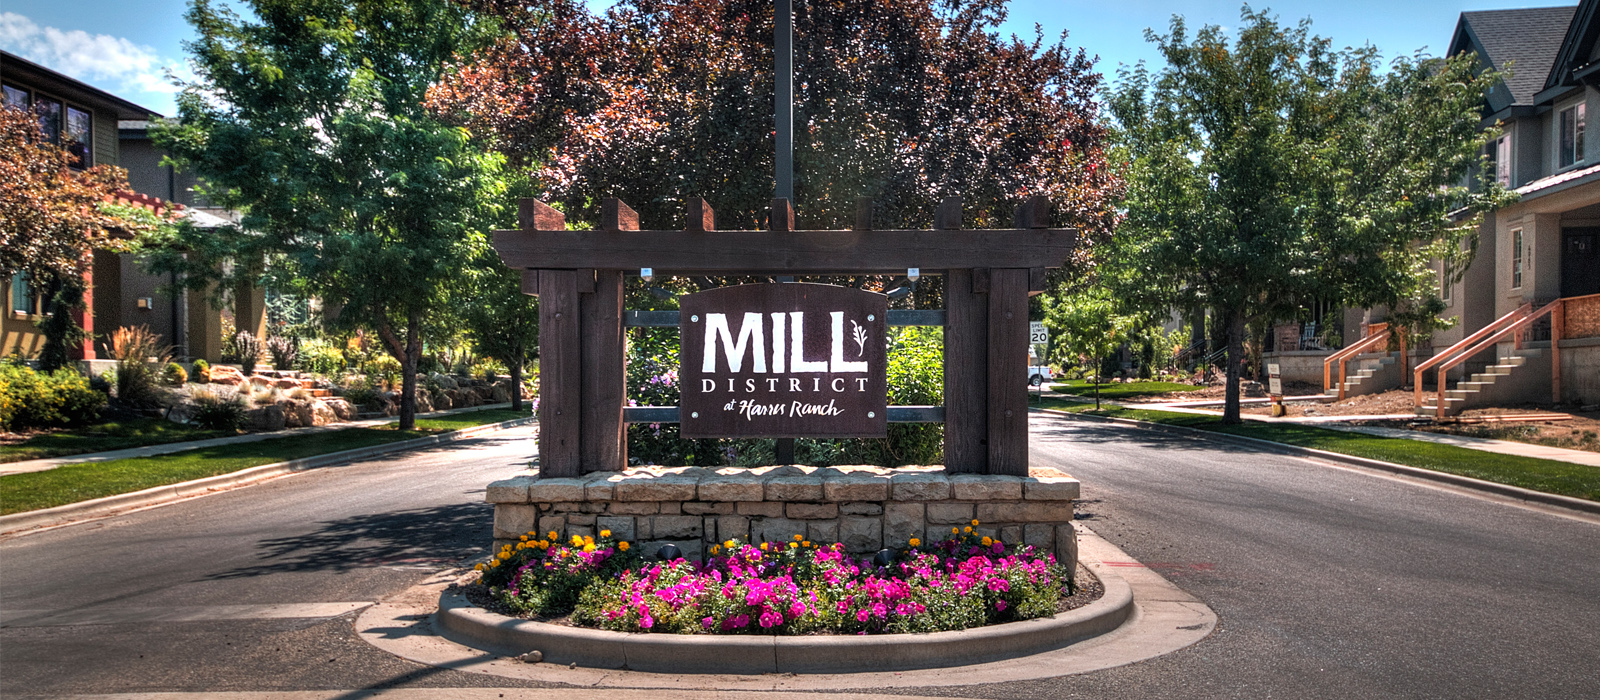 Mill District Northeast Boise Idaho